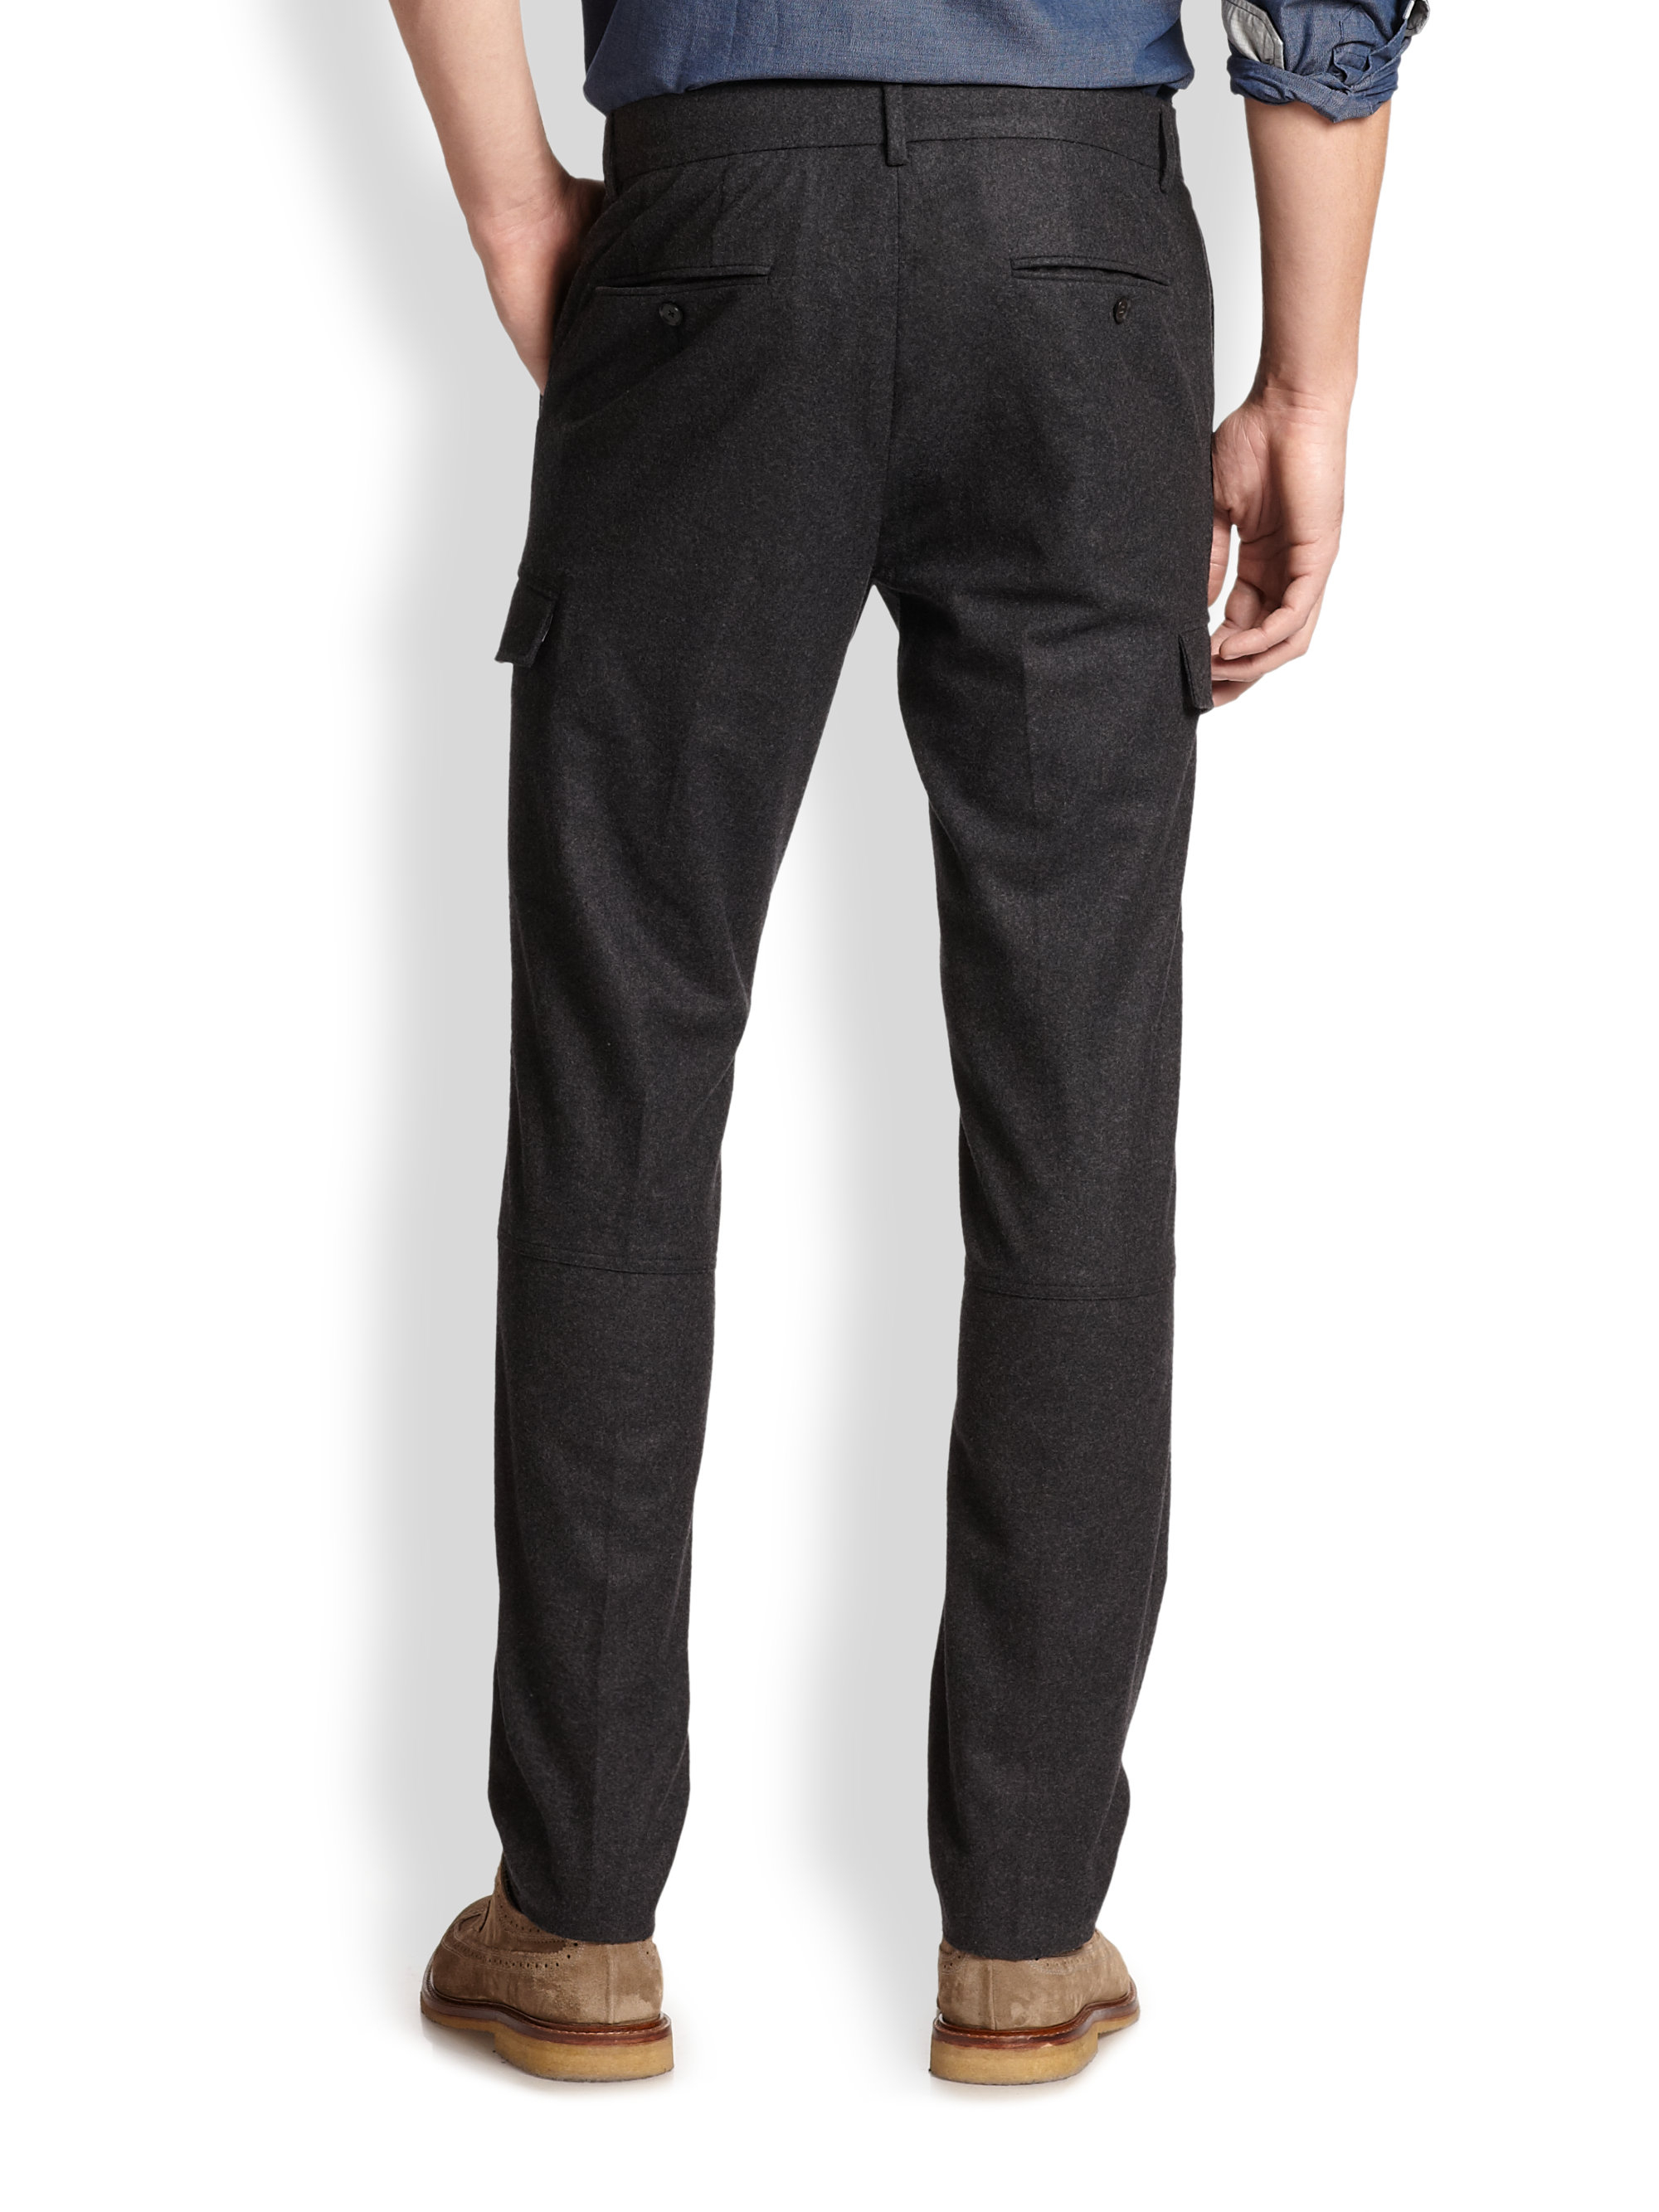 Every guy should have the basics: black dress pants, navy, charcoal, and, of course, khaki. Build a solid rotation of pants from brands like Ballin and Sansabelt and people in the office will surely take notice of your pants game.